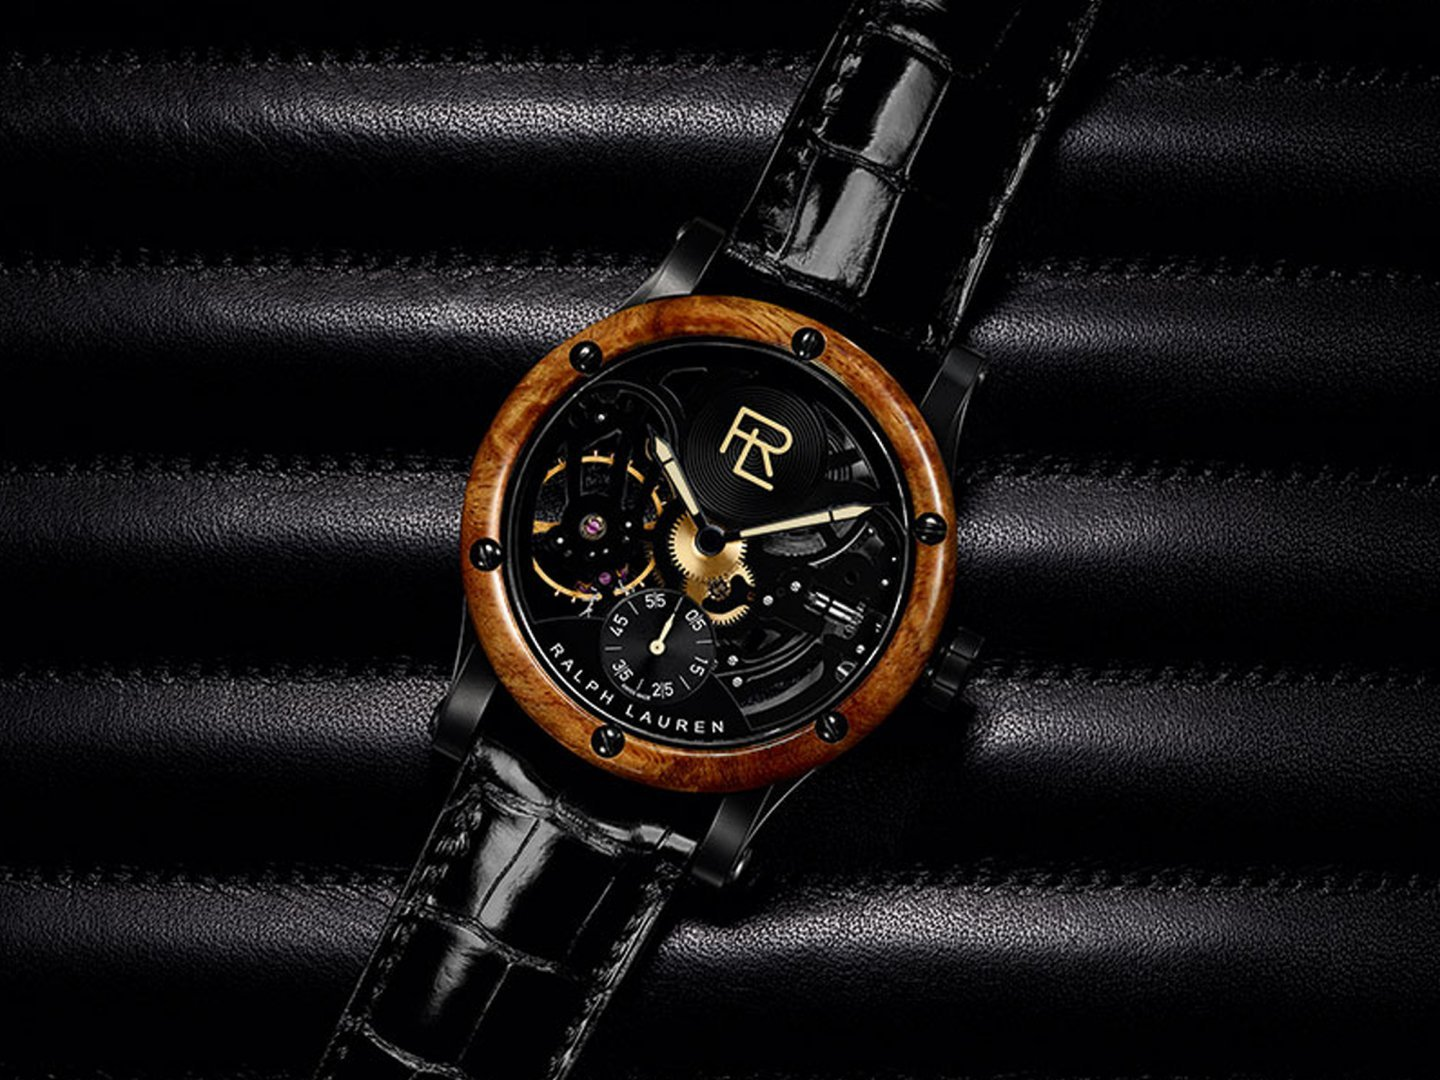 ralph lauren rl automotive skeleton watch inspired by bugatti unveiling in singapore swiss. Black Bedroom Furniture Sets. Home Design Ideas